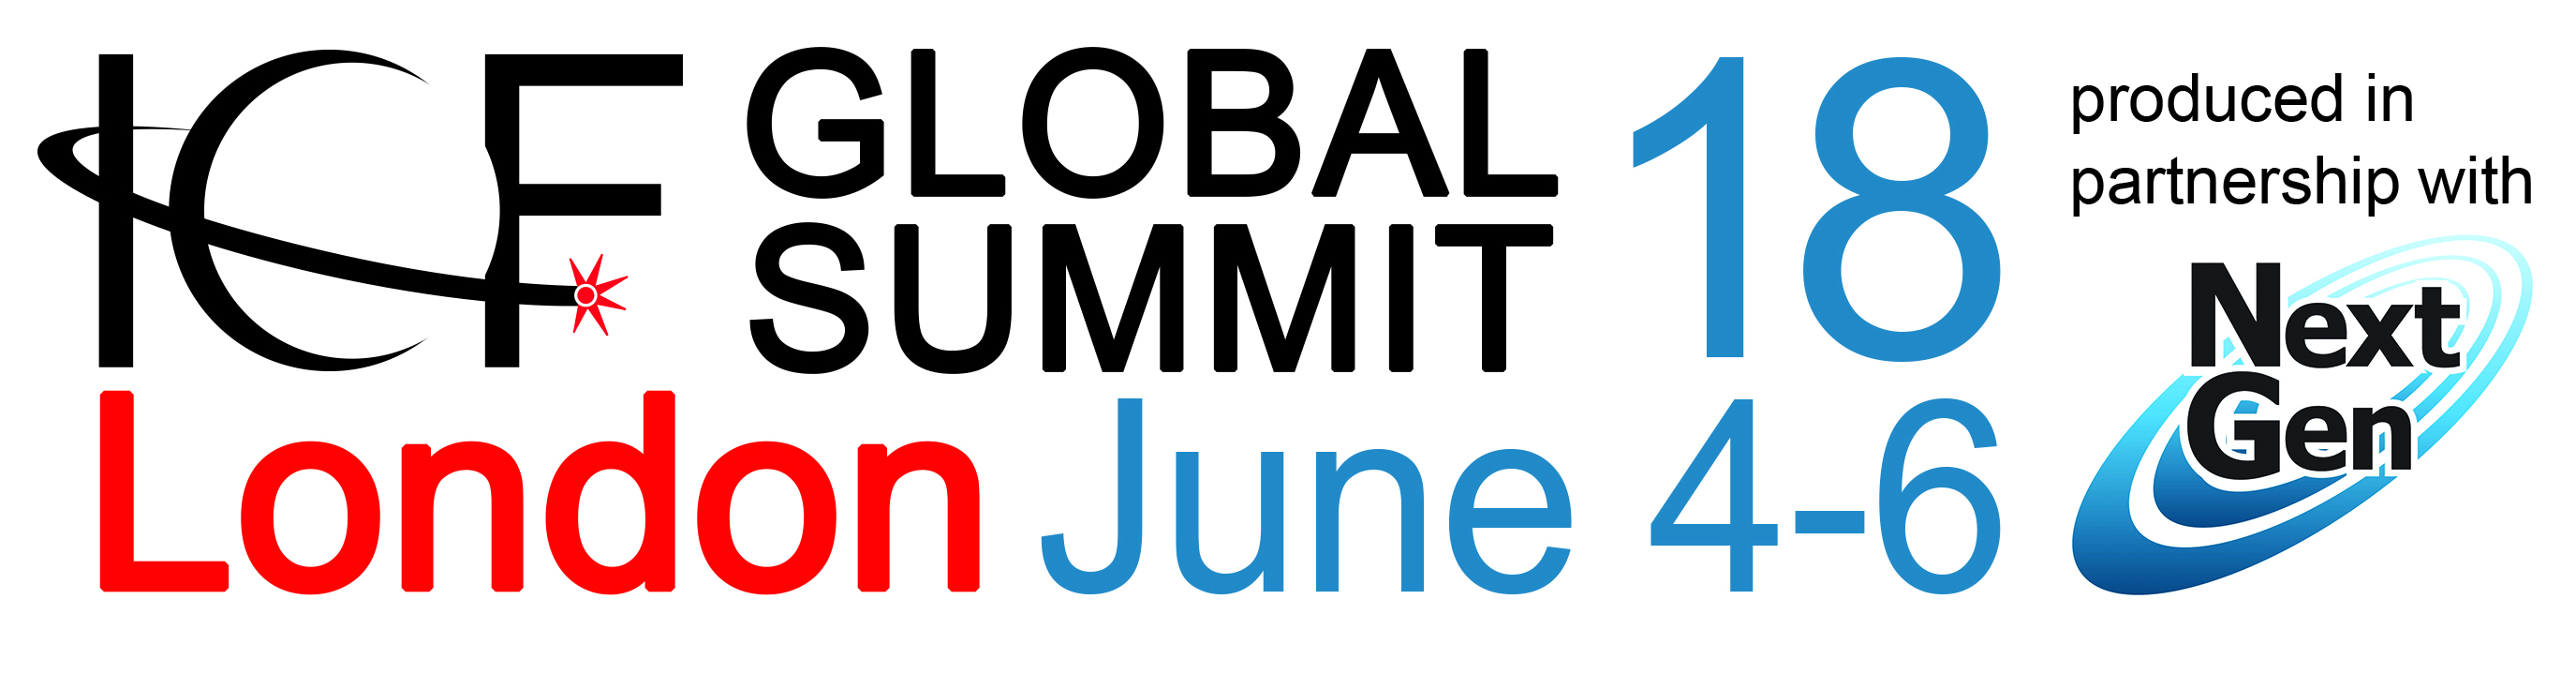 Summit18LogoJune4-6.jpg